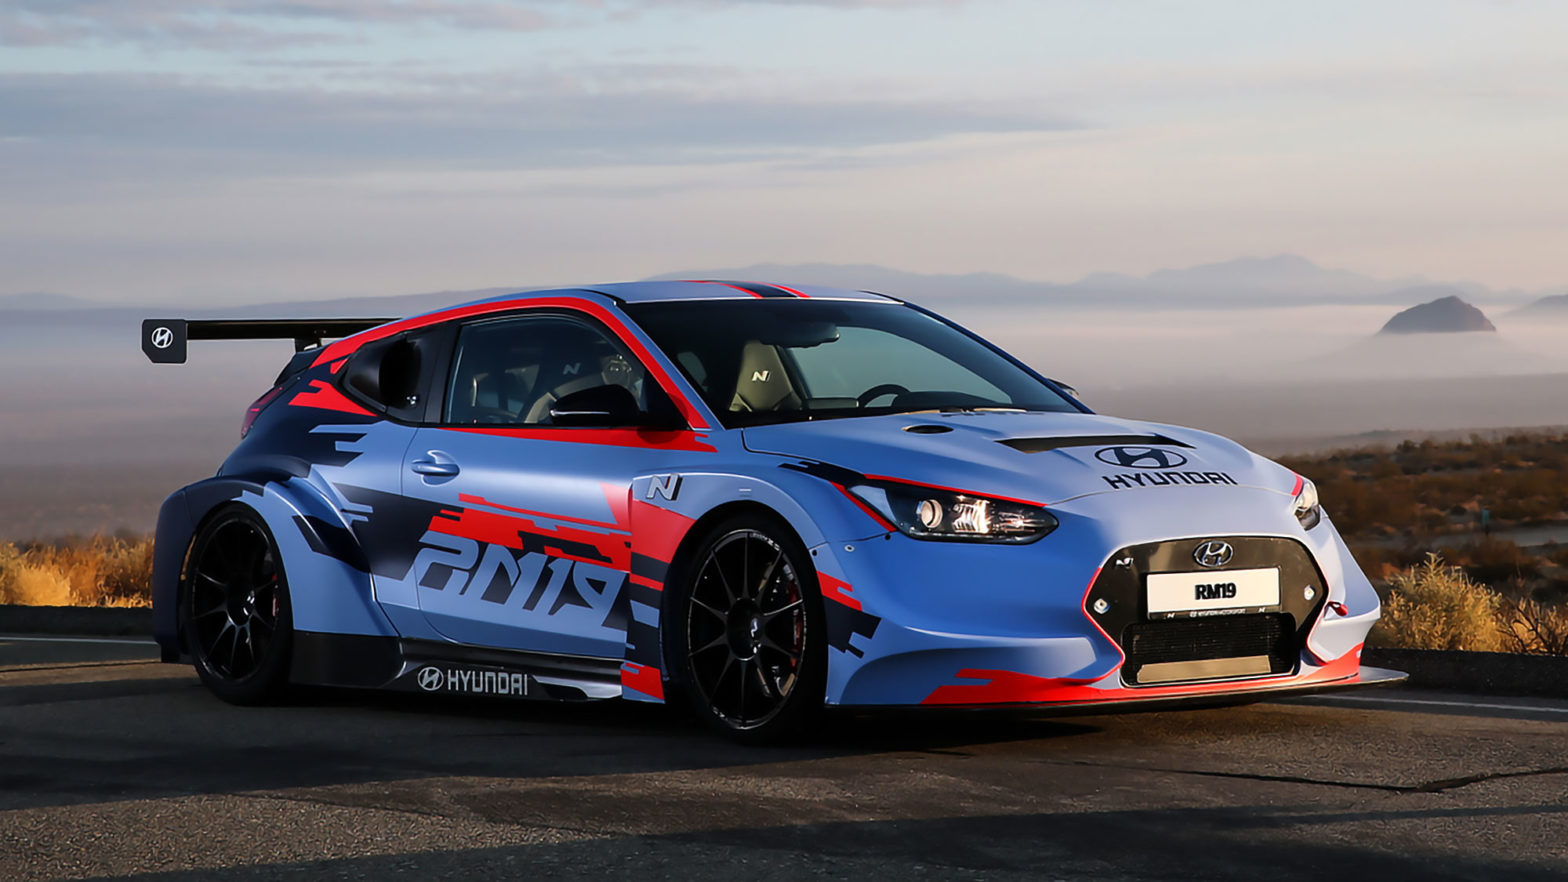 Hyundai RM19 Racing Midship Sports Car